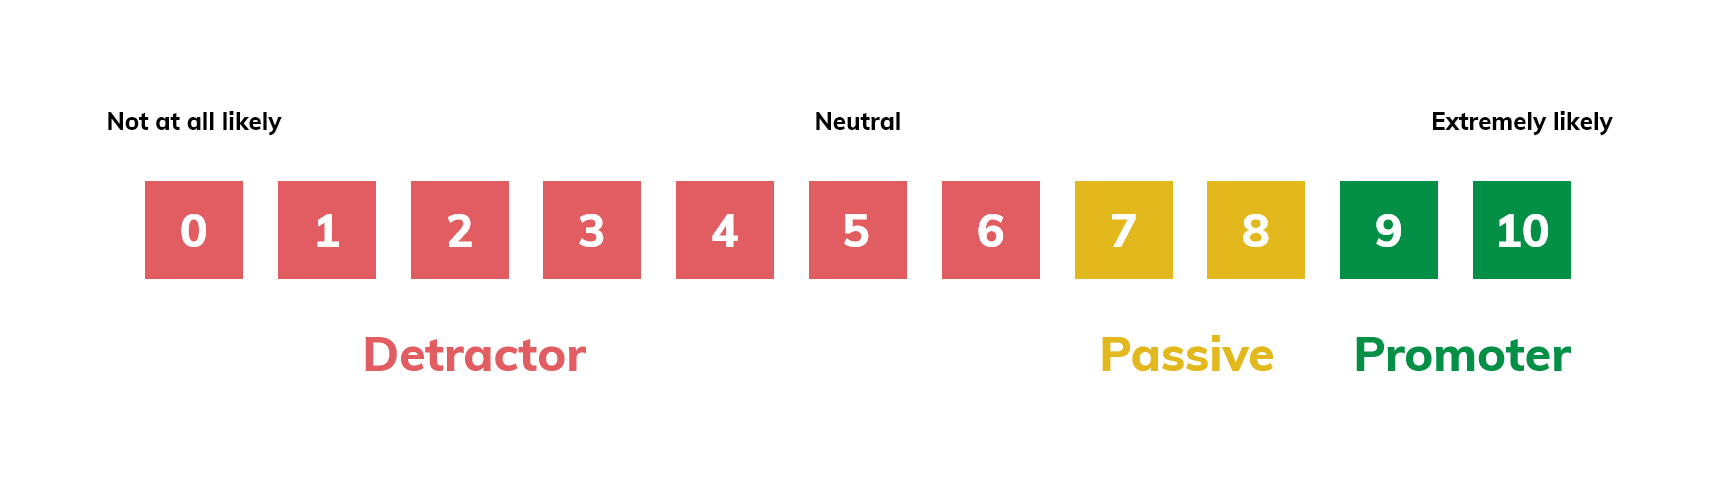 The Net Promoter Score scale.